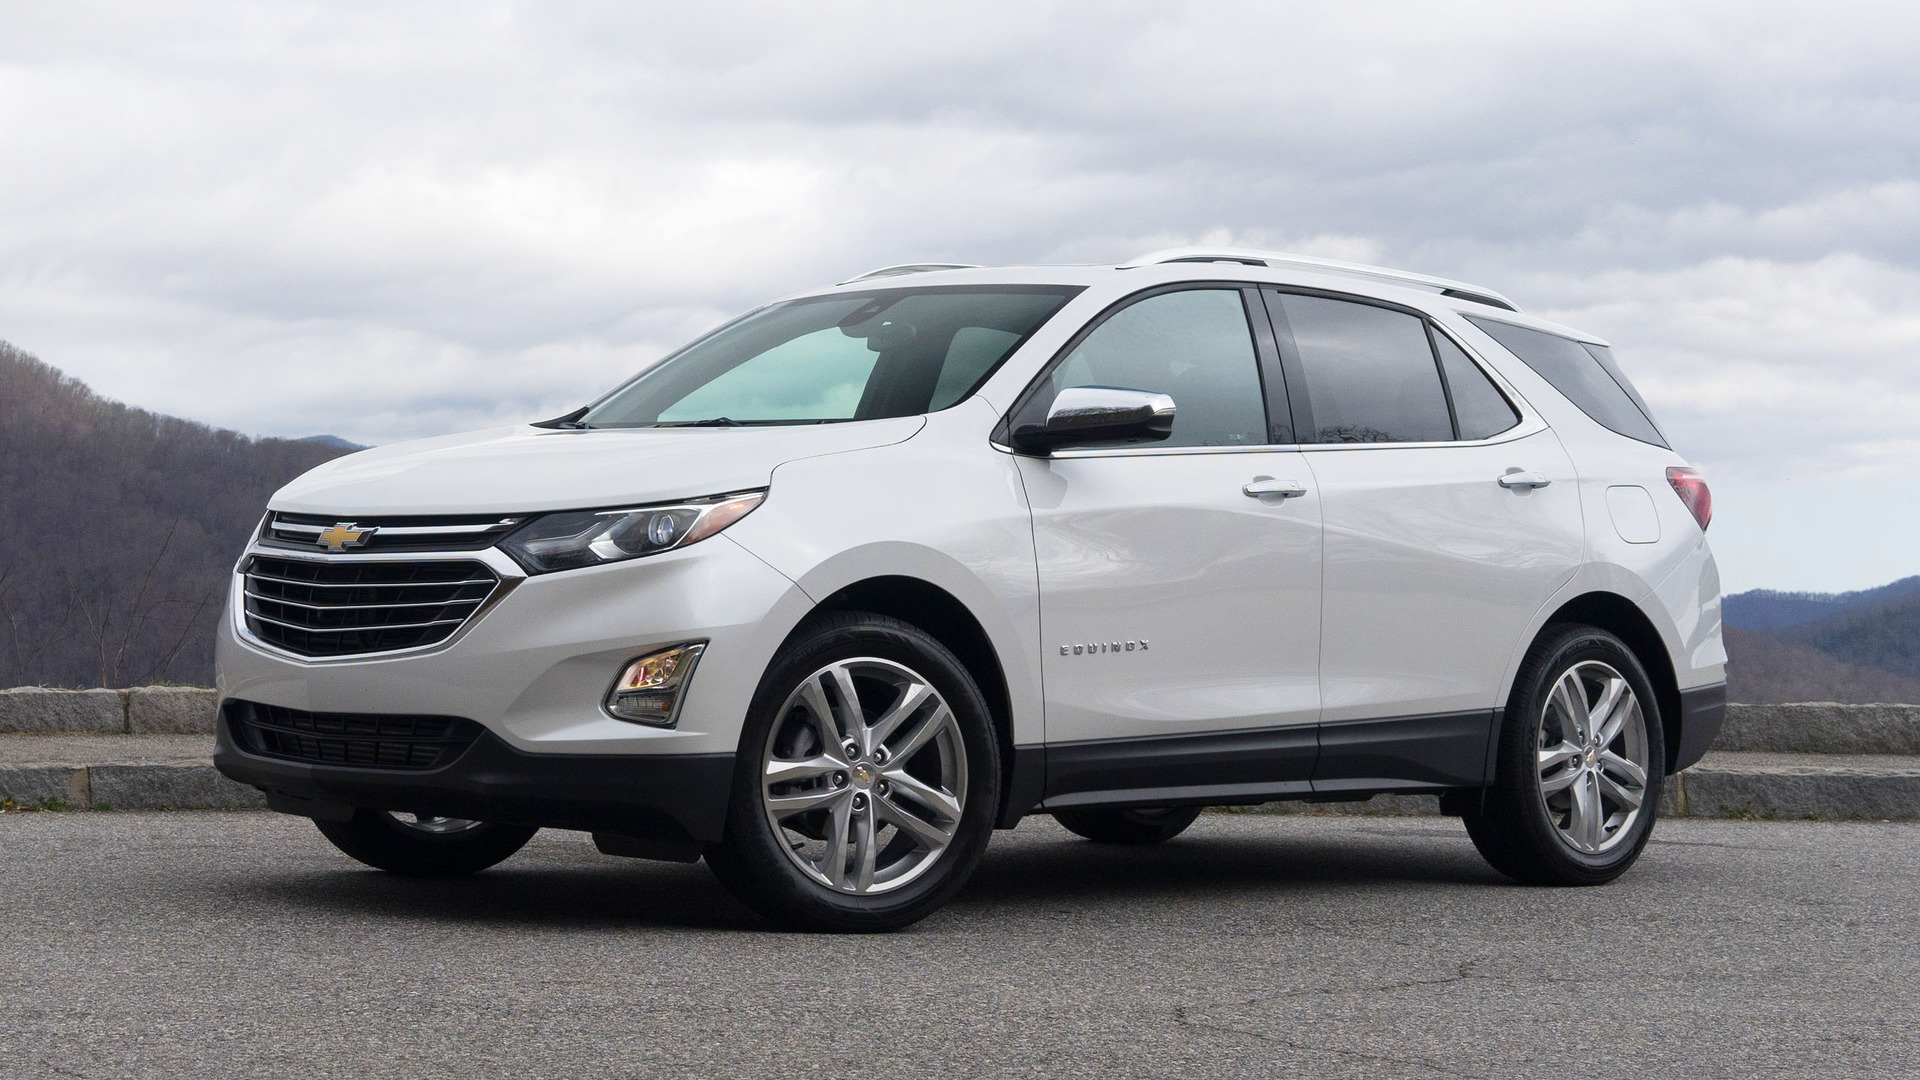 2018 Chevy Equinox First Drive: Lighter, Smarter, Better